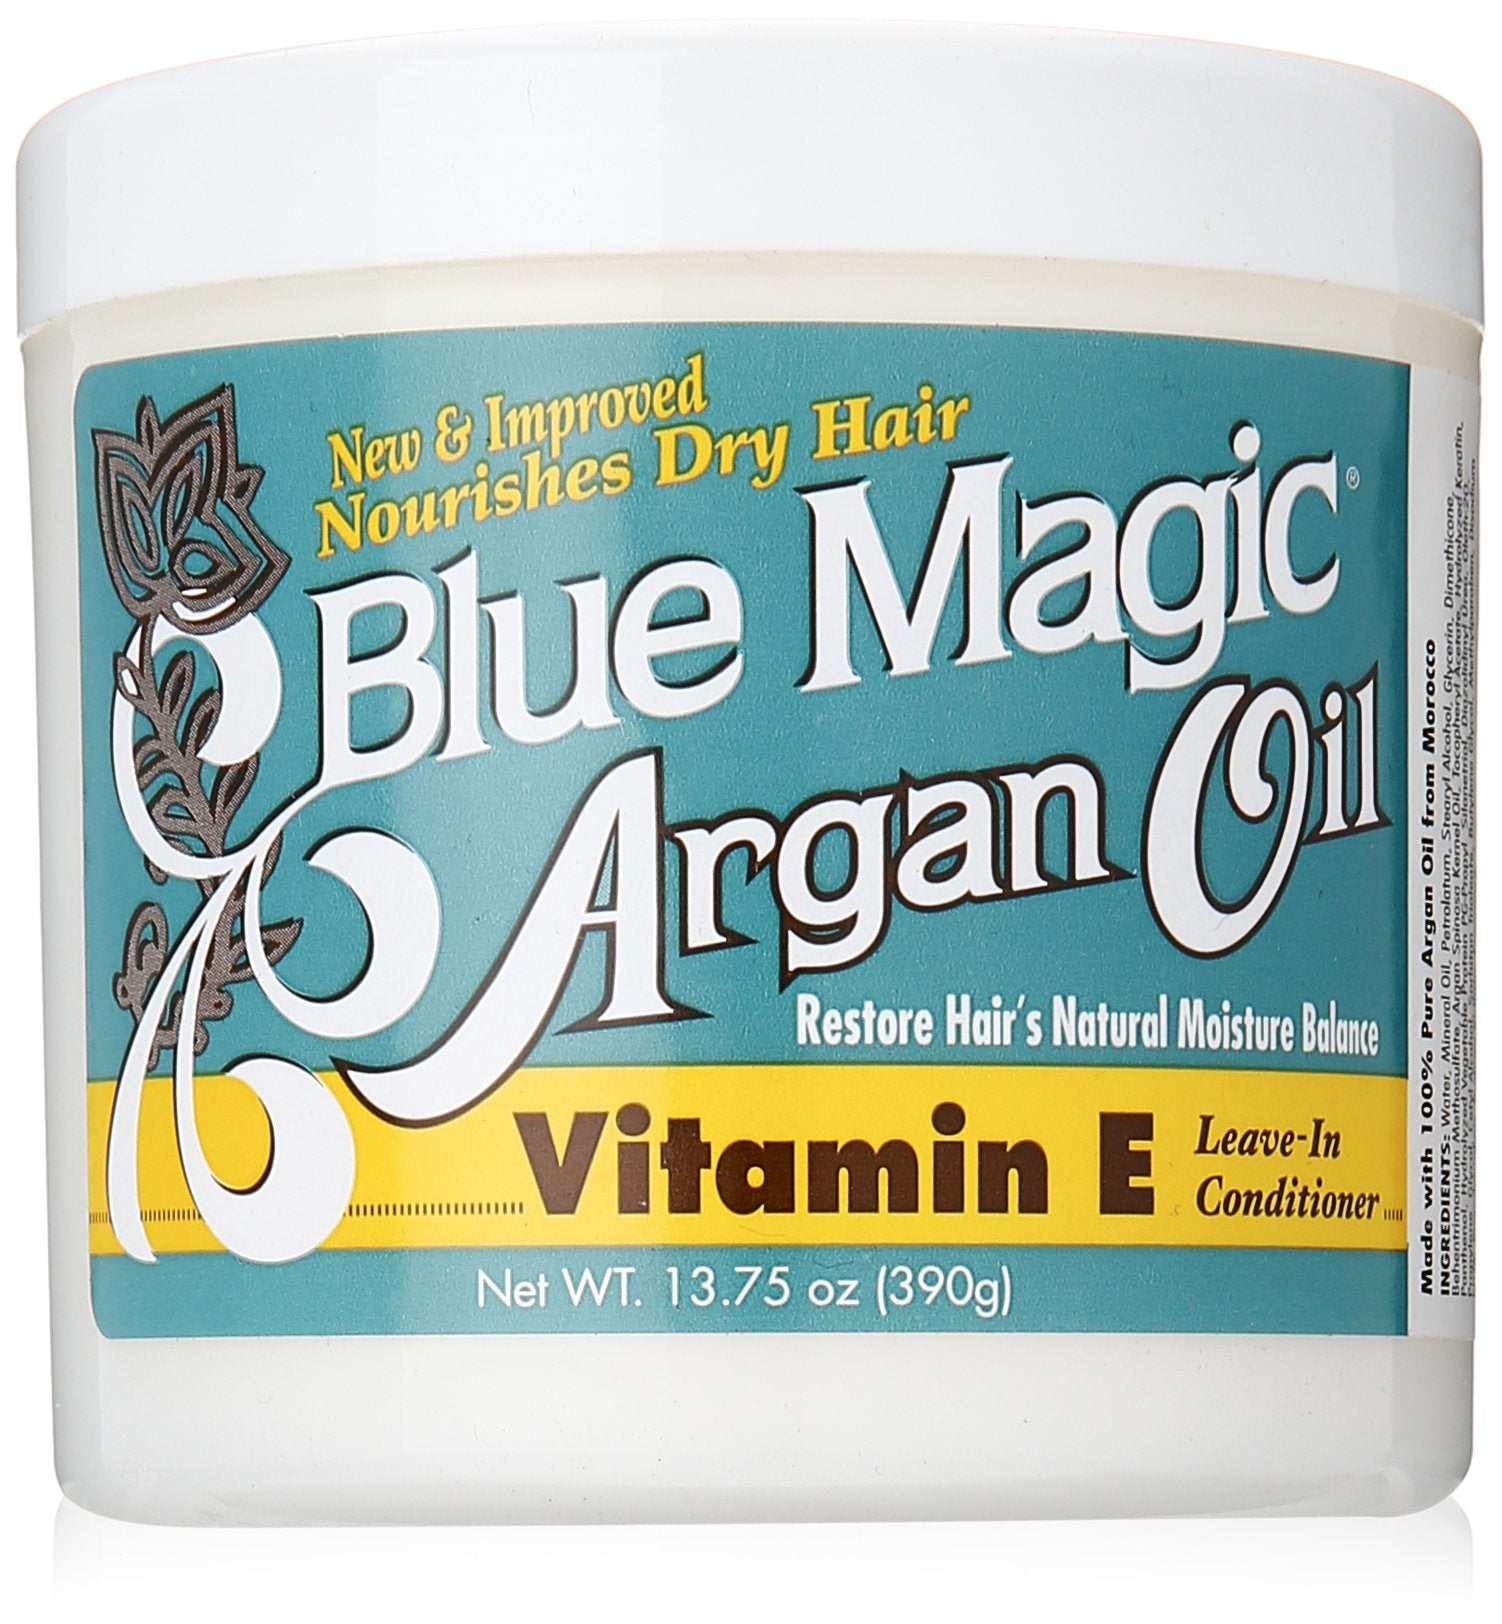 Blue Magic Argan Oil Leave In Conditioner- Vitamin E 13.75 oz